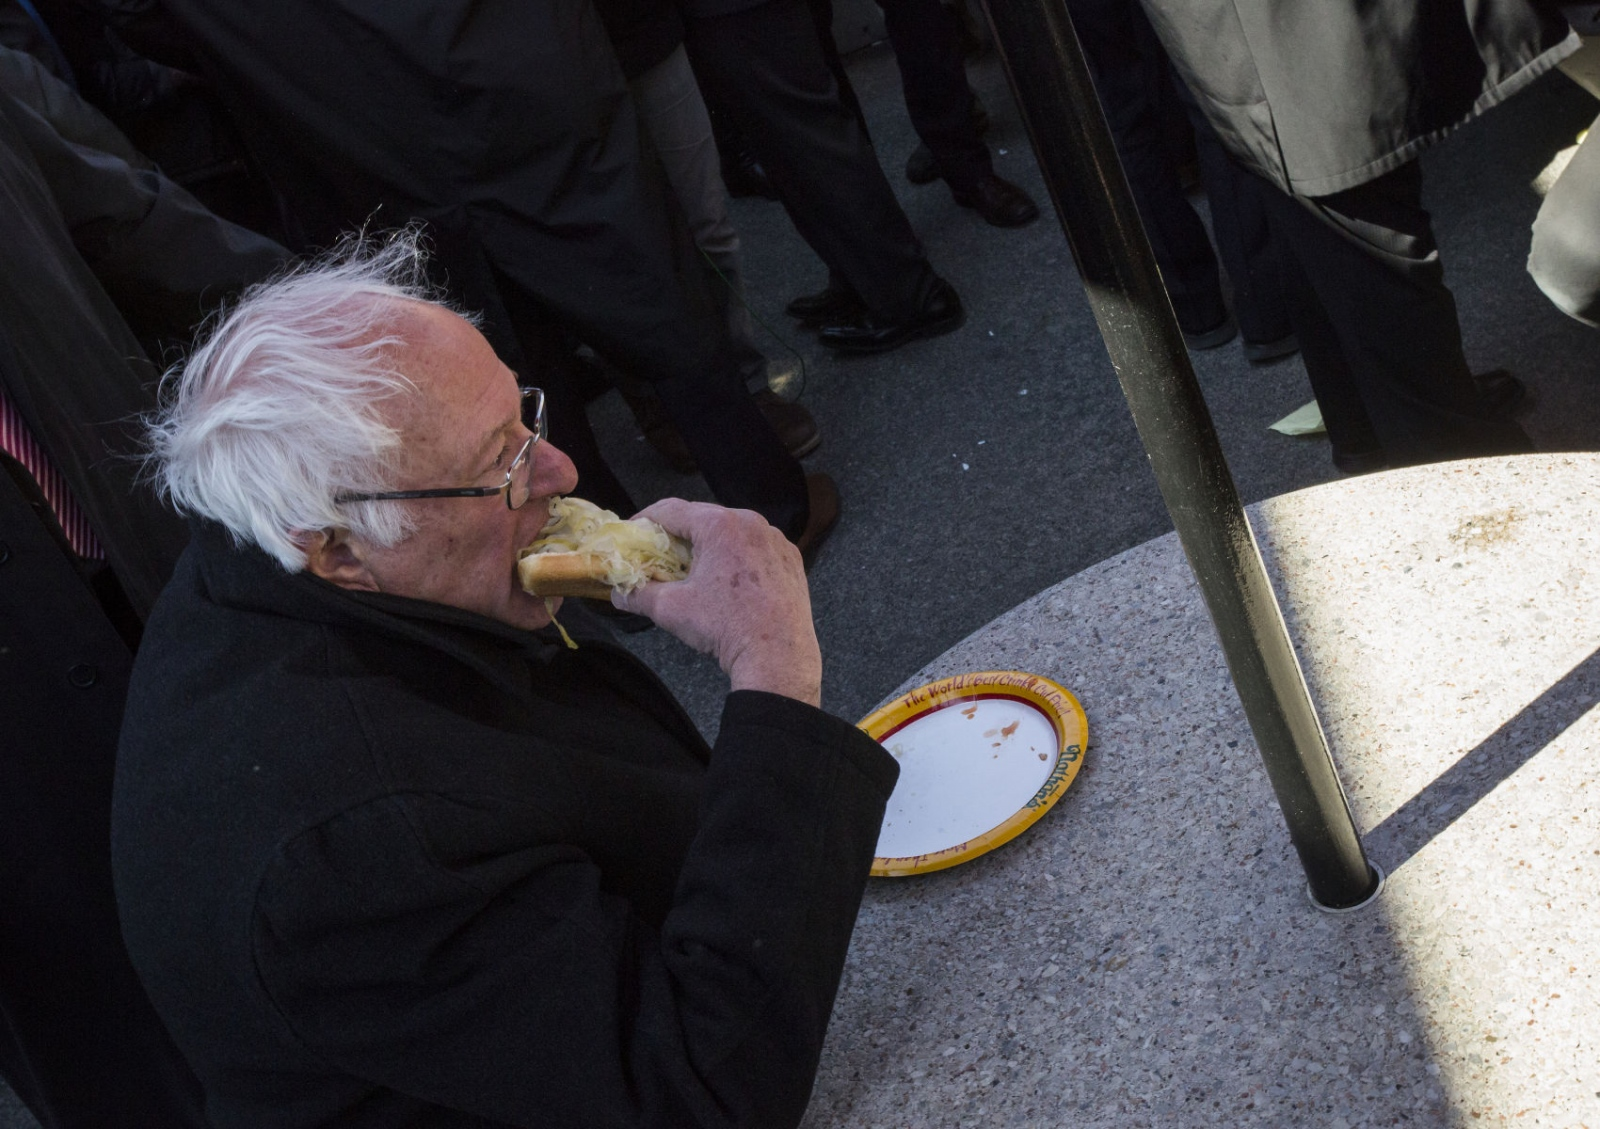 Bernie Sanders having a Nathan's Famous after his Coney Island rally,Coney Island, Brooklyn. April 10, 2016, Kevin C. Downs/Cosmos